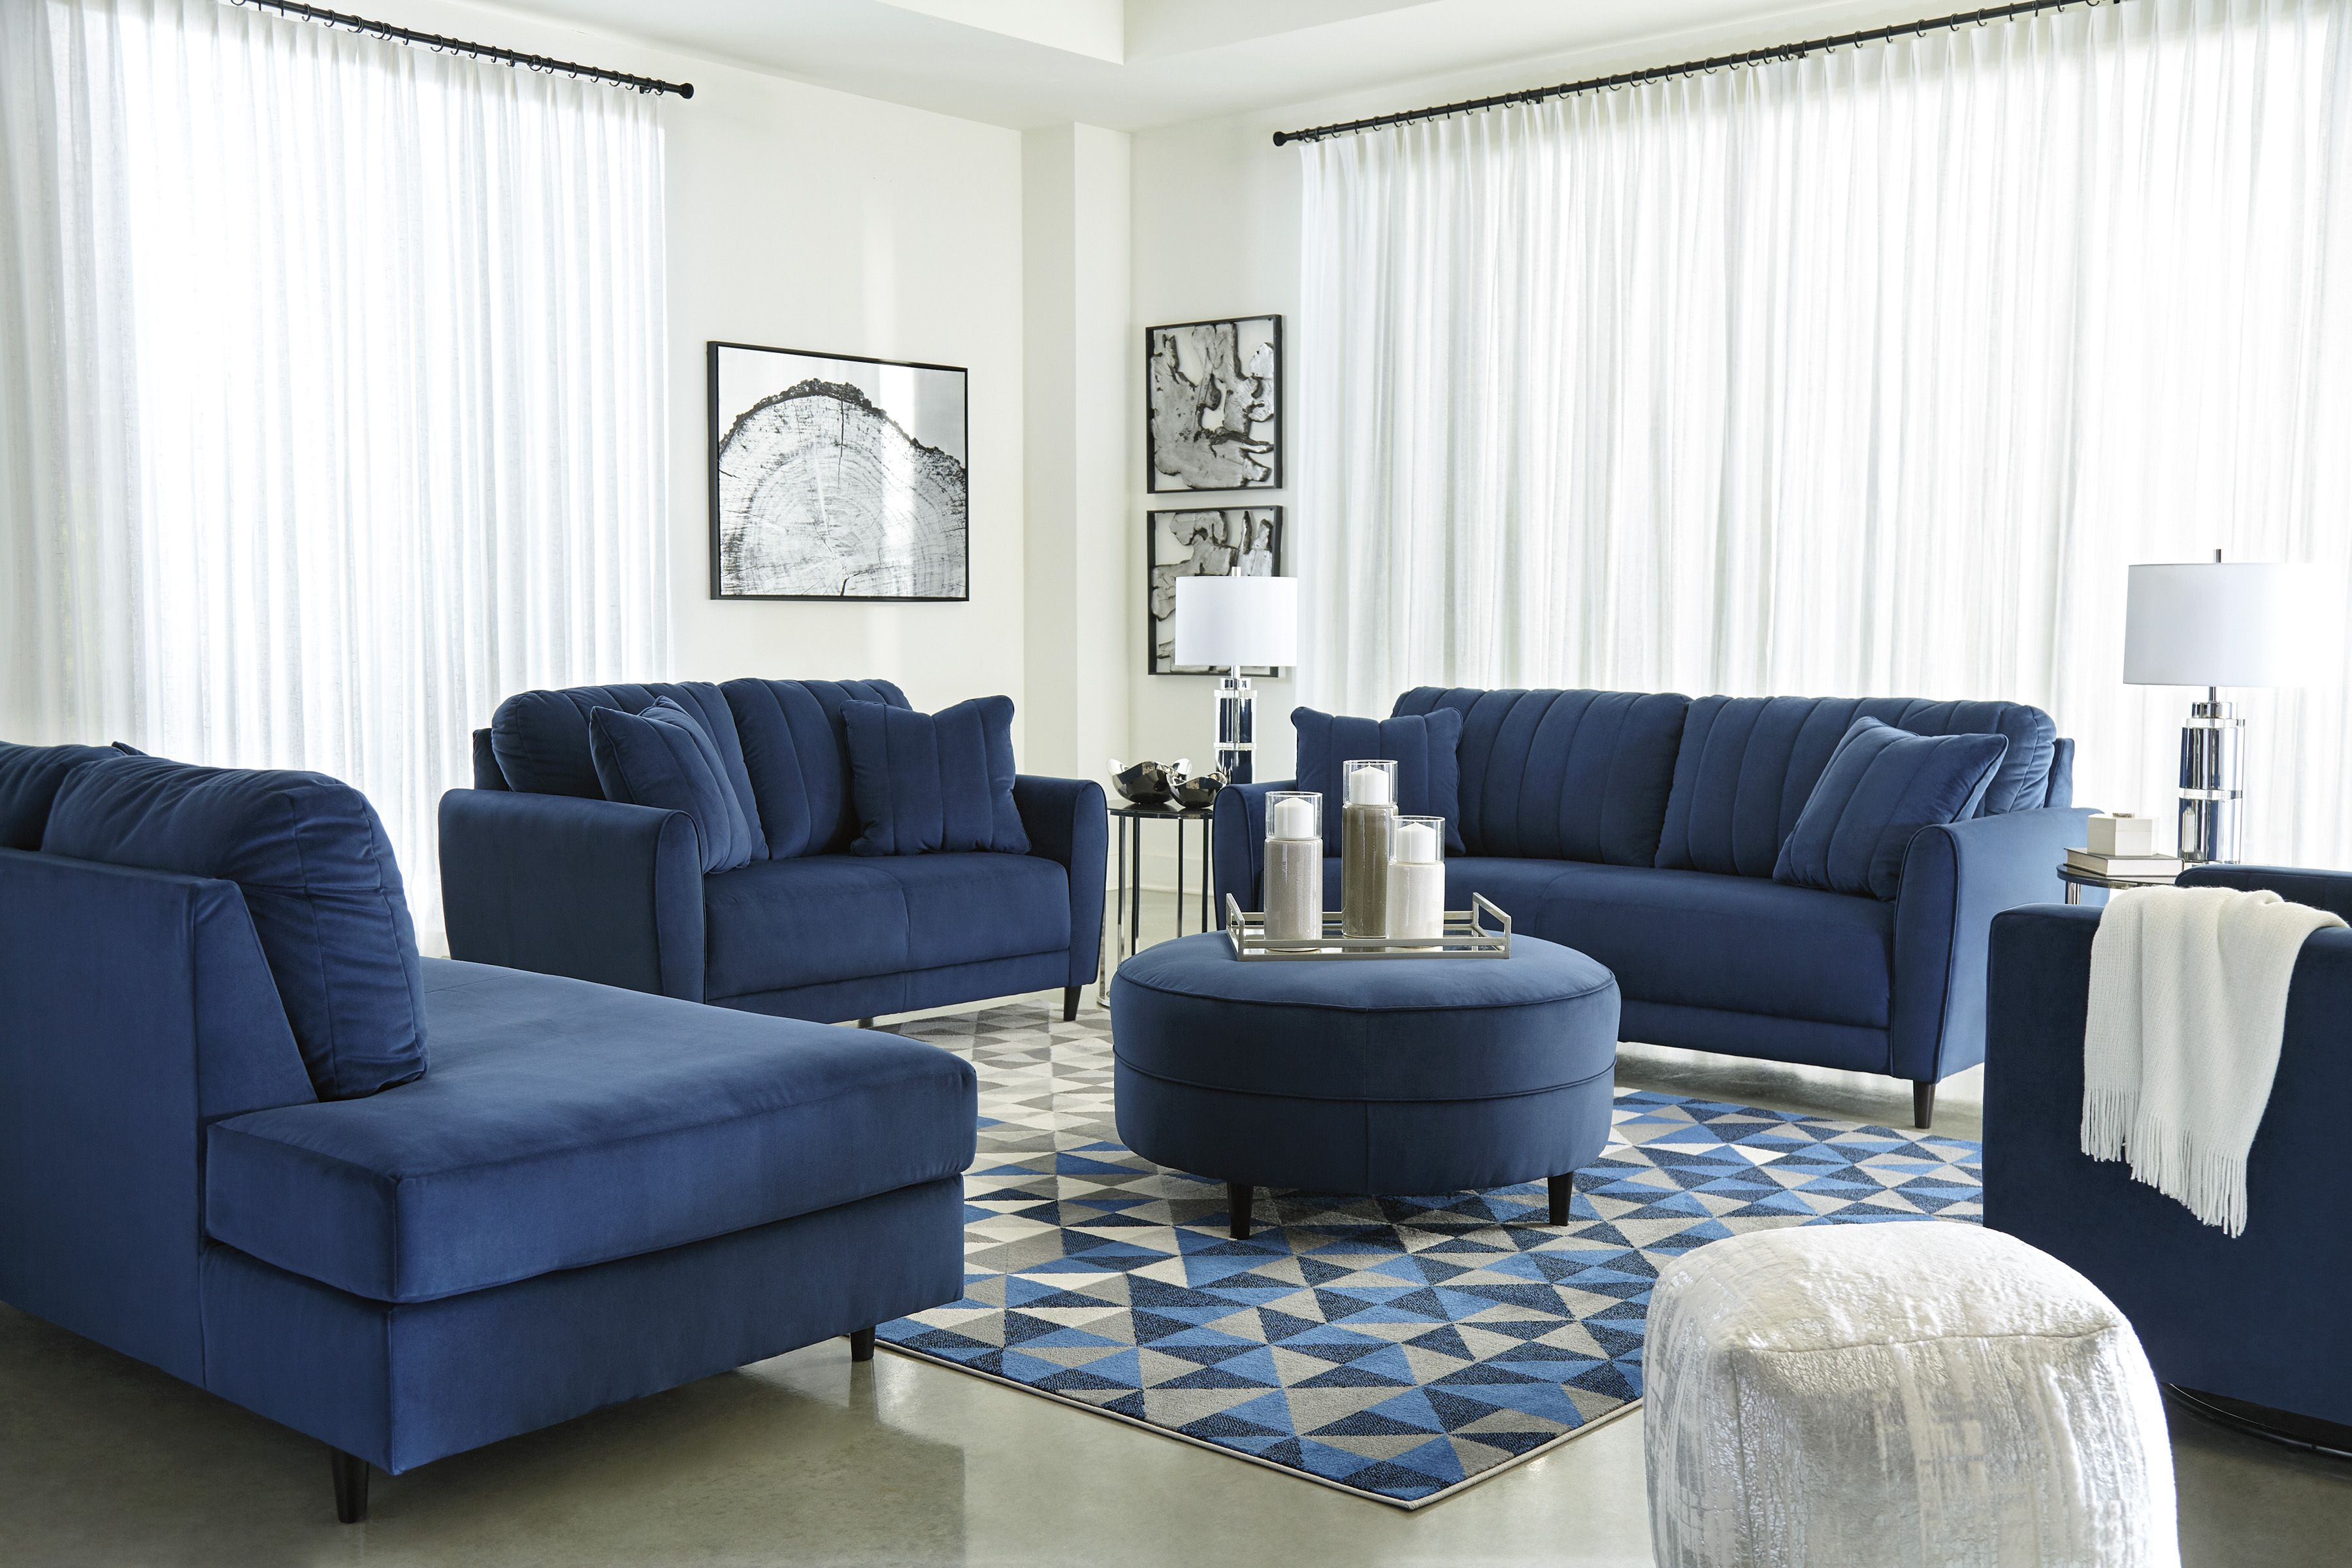 1780138 In By Ashley Furniture In Fairbury Il Enderlin Sofa Blue Living Room Sets Furniture Design Living Room Blue Living Room